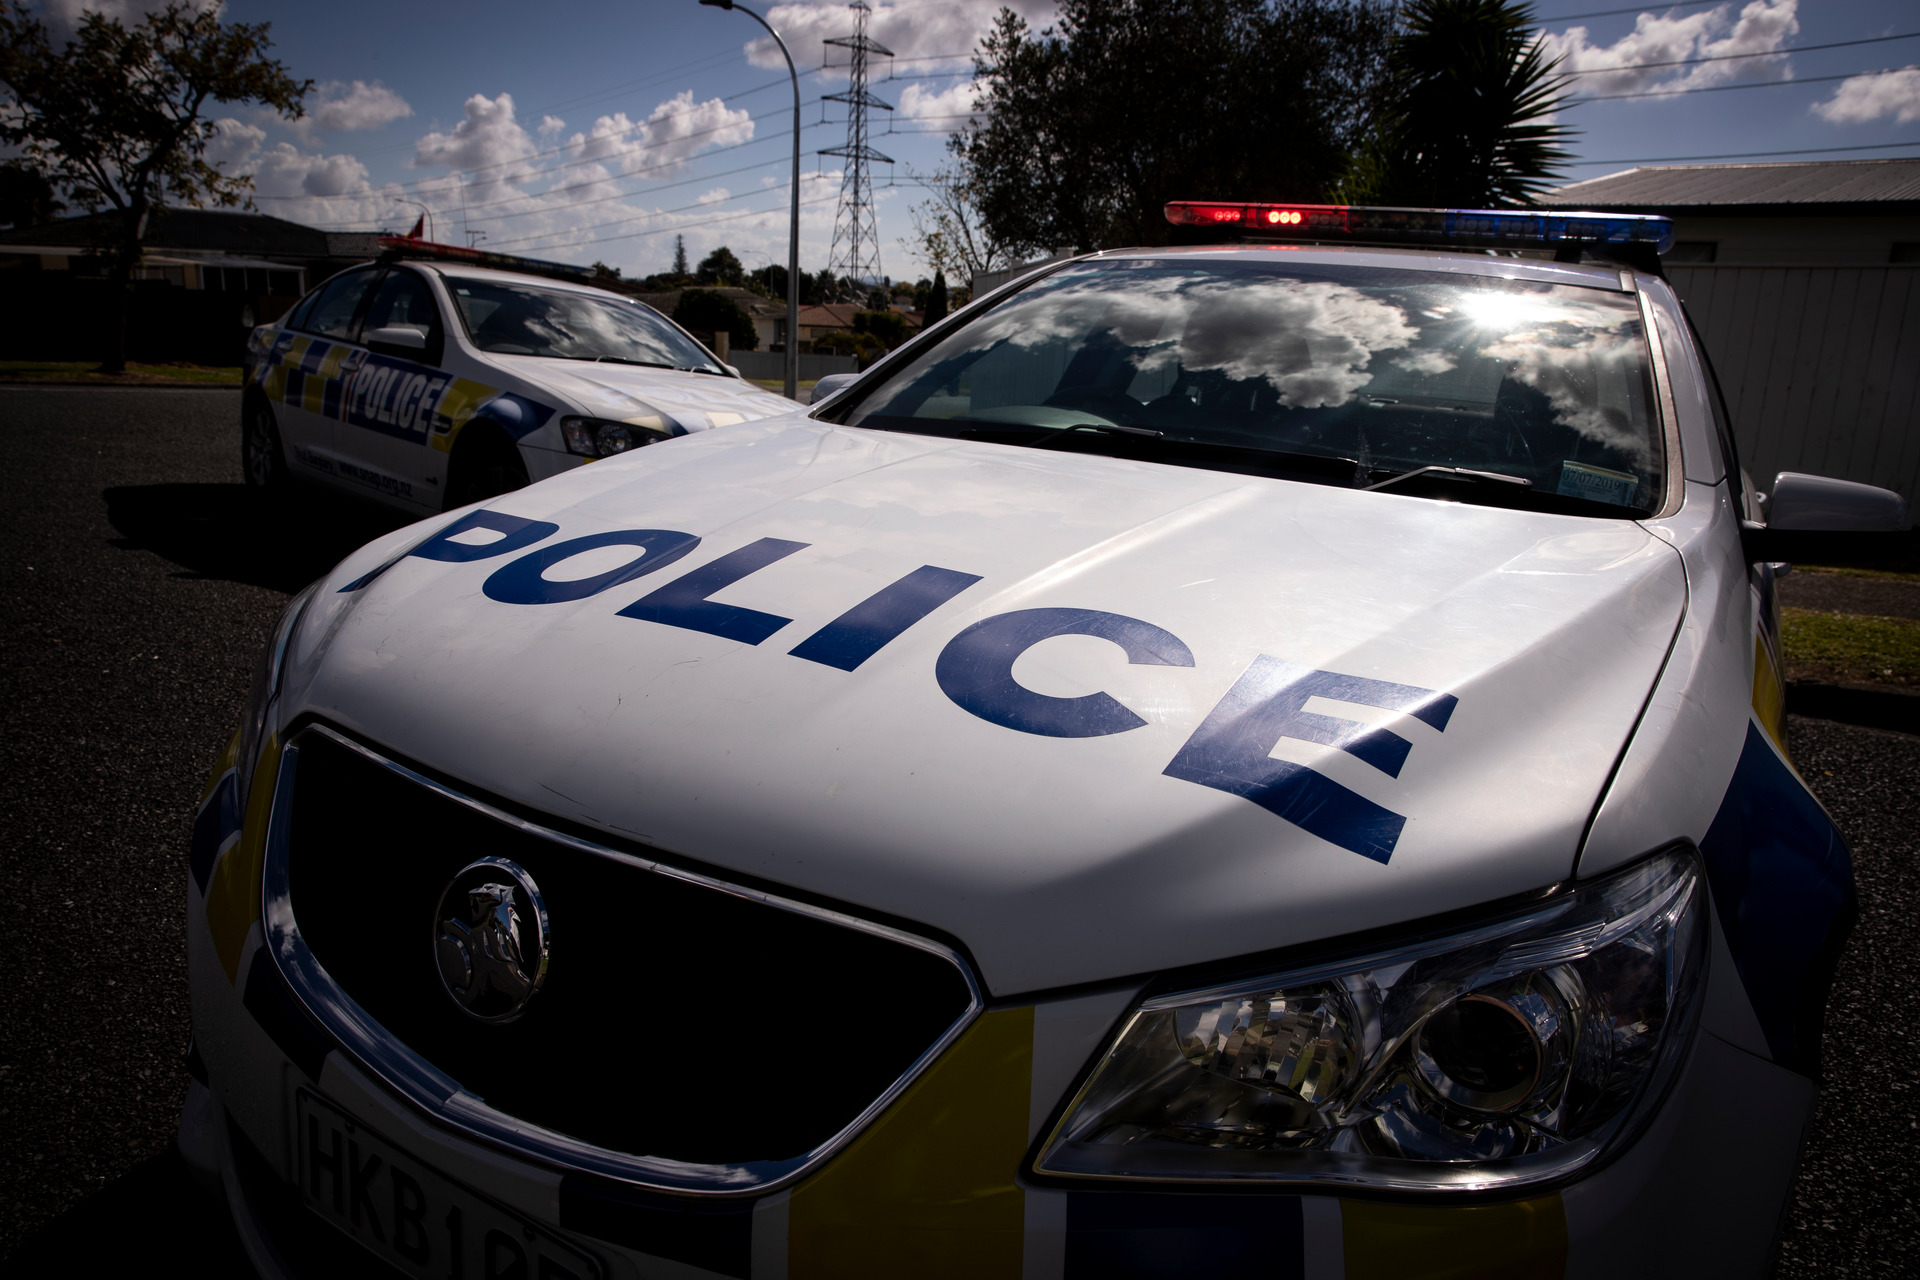 Woman flees police in chase - and then escapes from Oamaru station